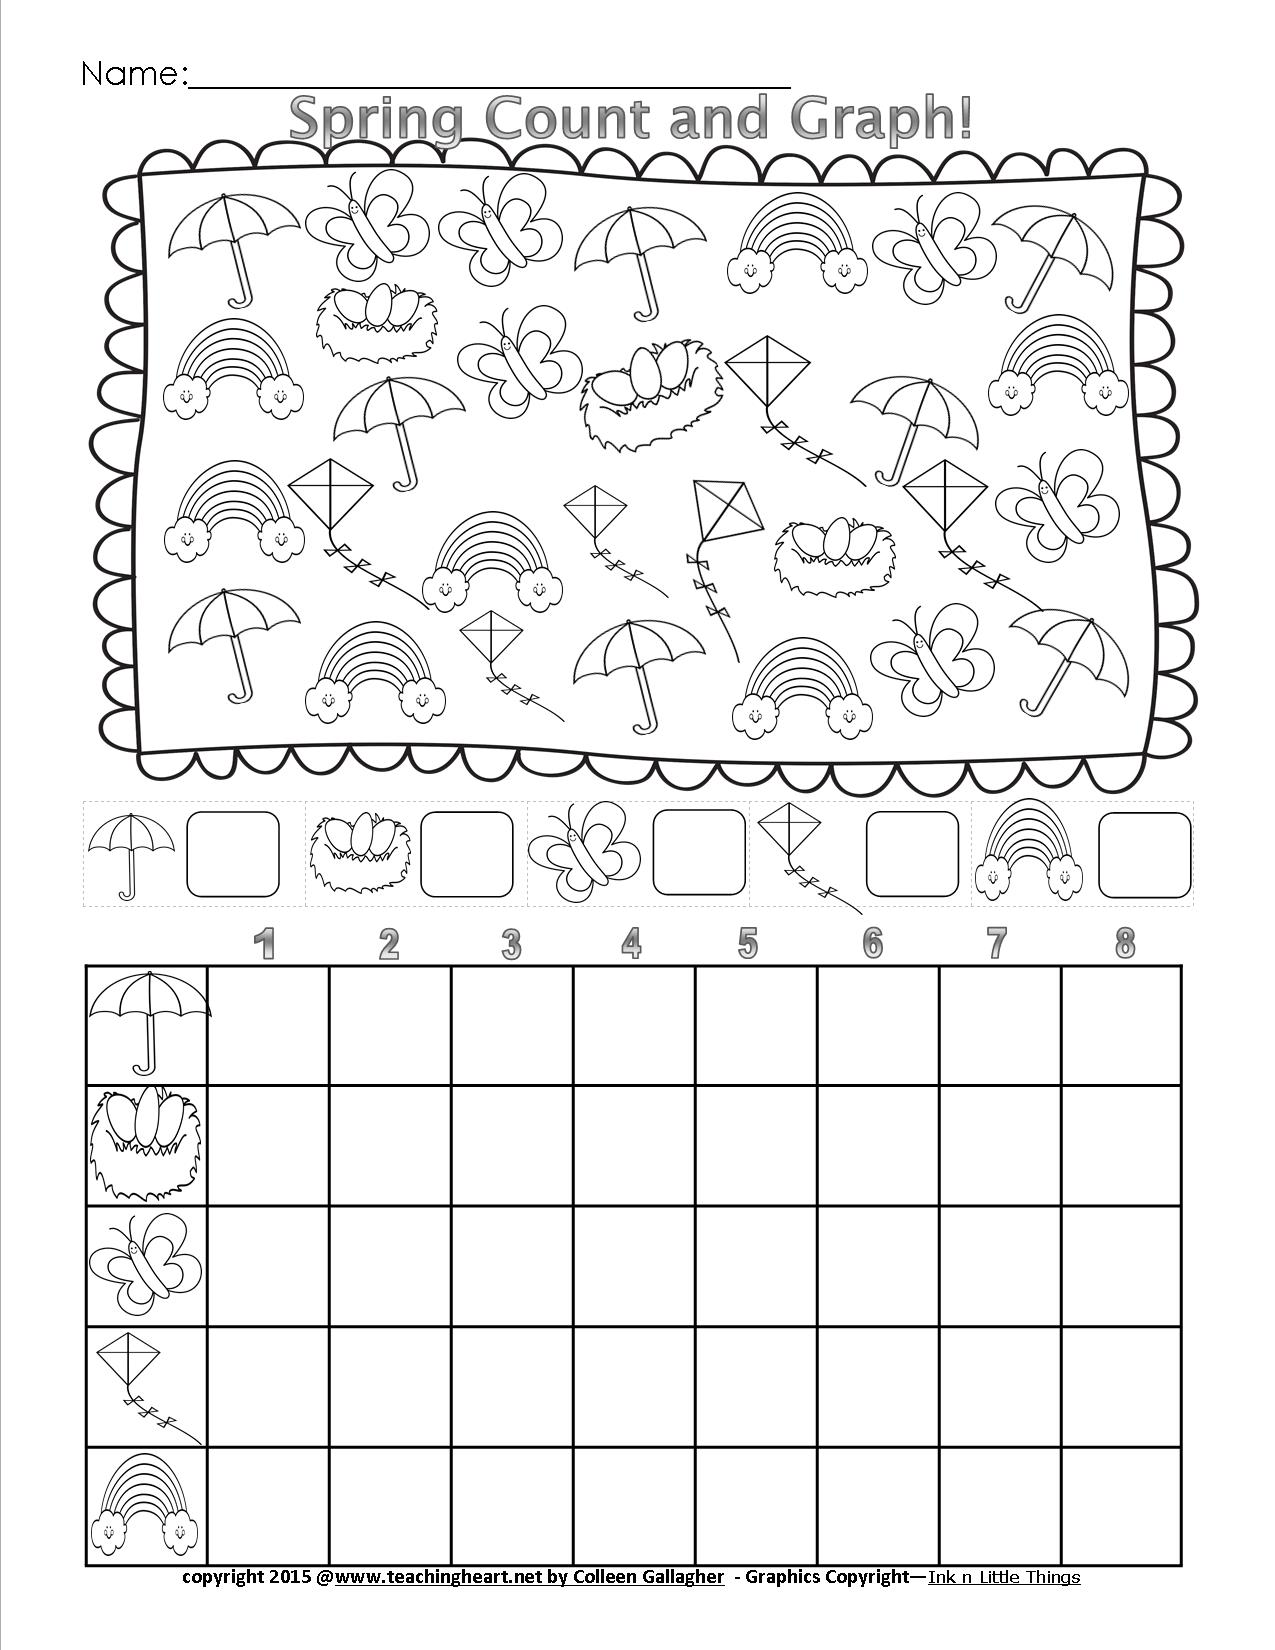 Spring Count and Graph Free Teaching Heart Blog Teaching Heart – Kindergarten Graphing Worksheet